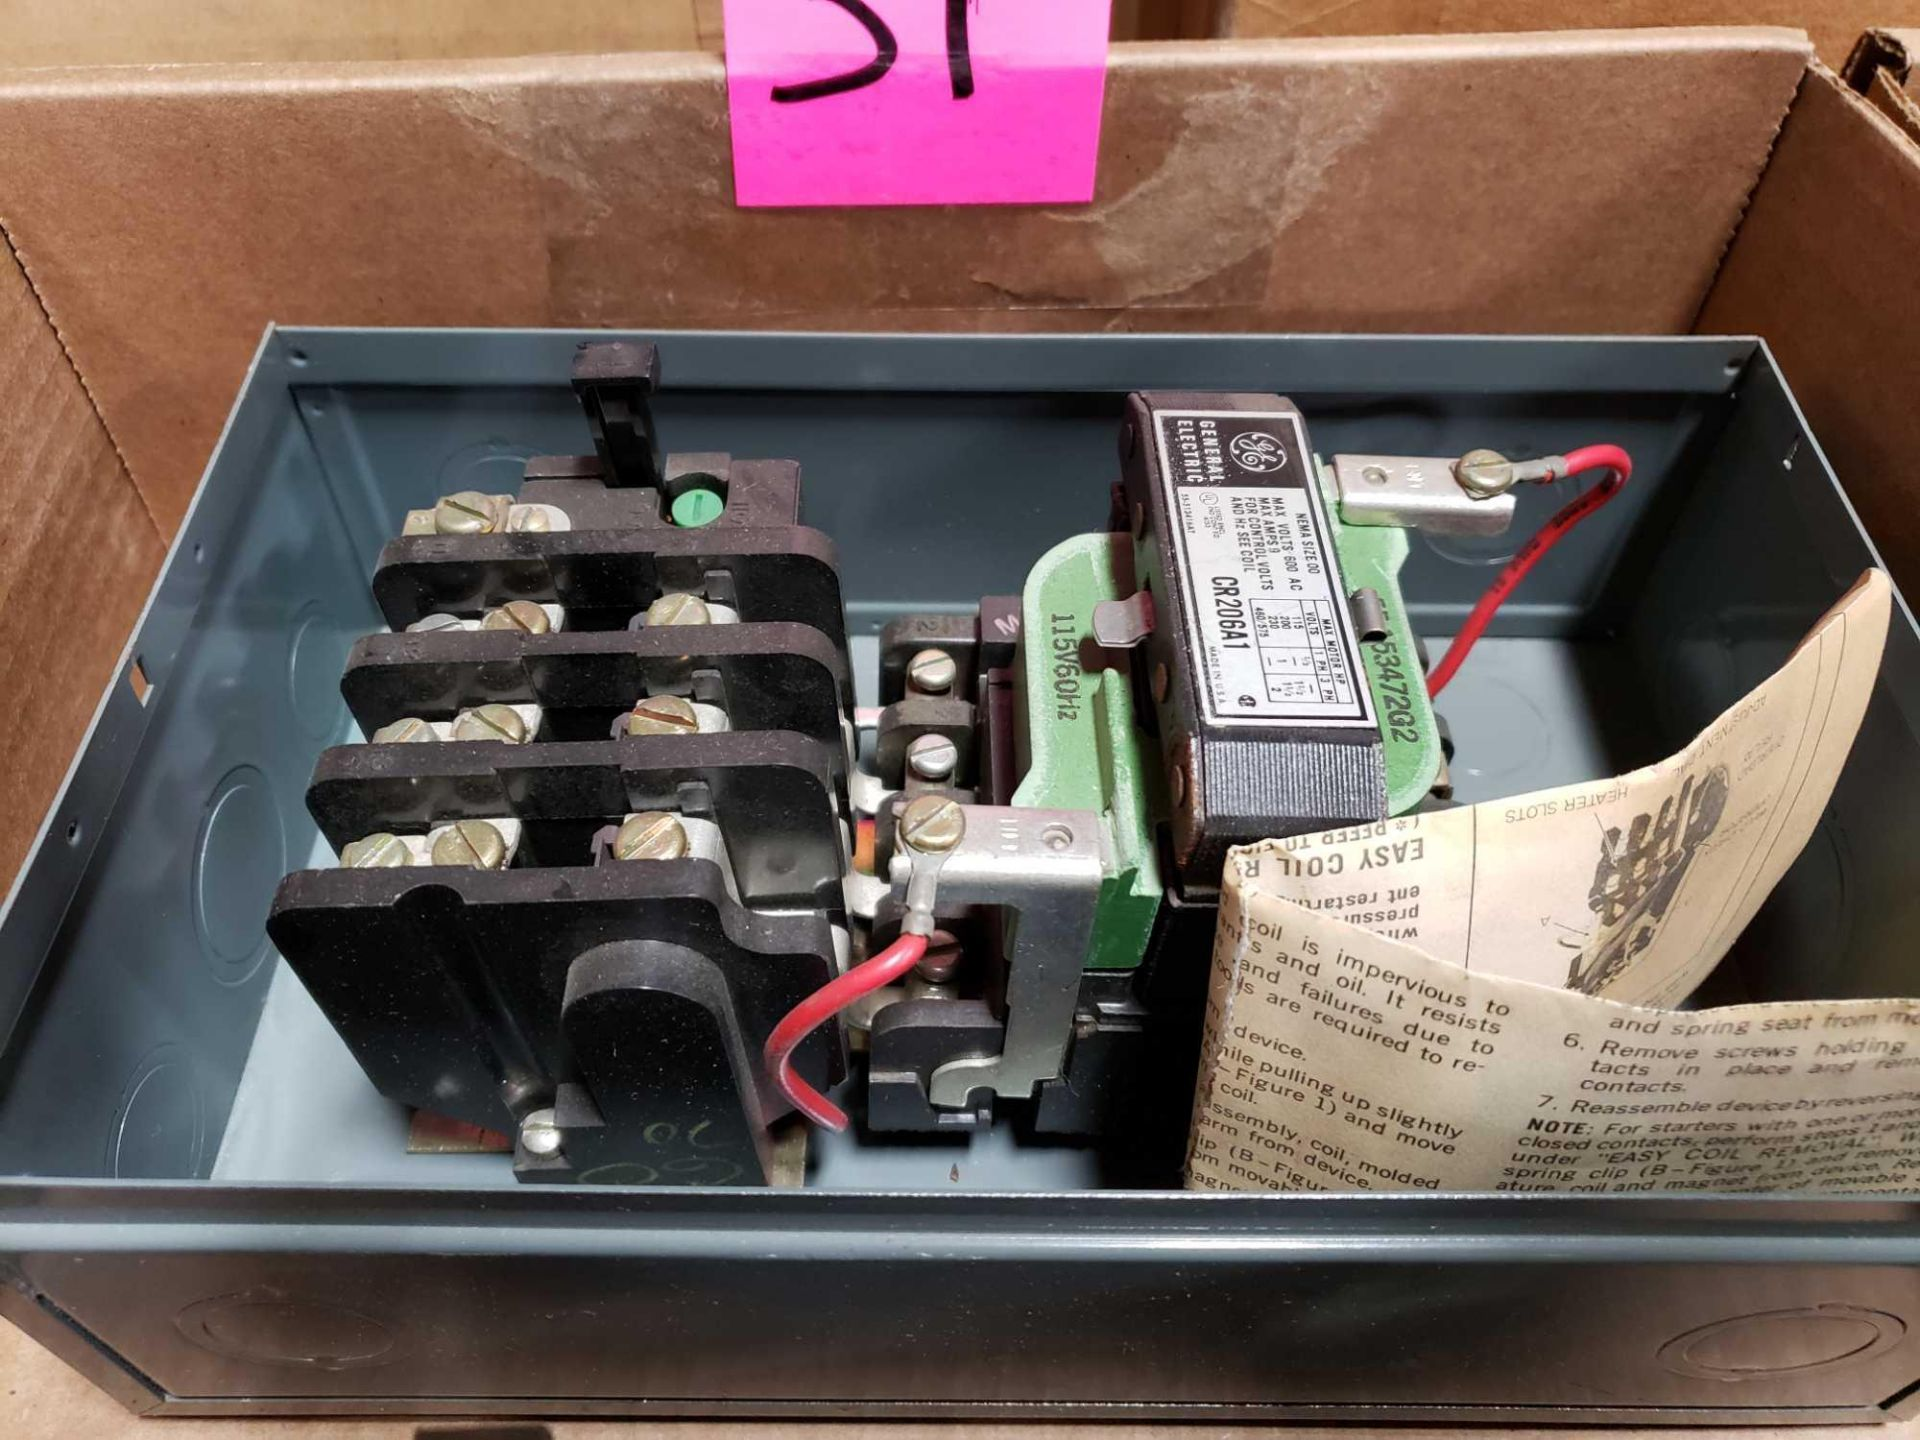 Lot 31 - Qty 2 - GE control relay assorted starters as pictured.